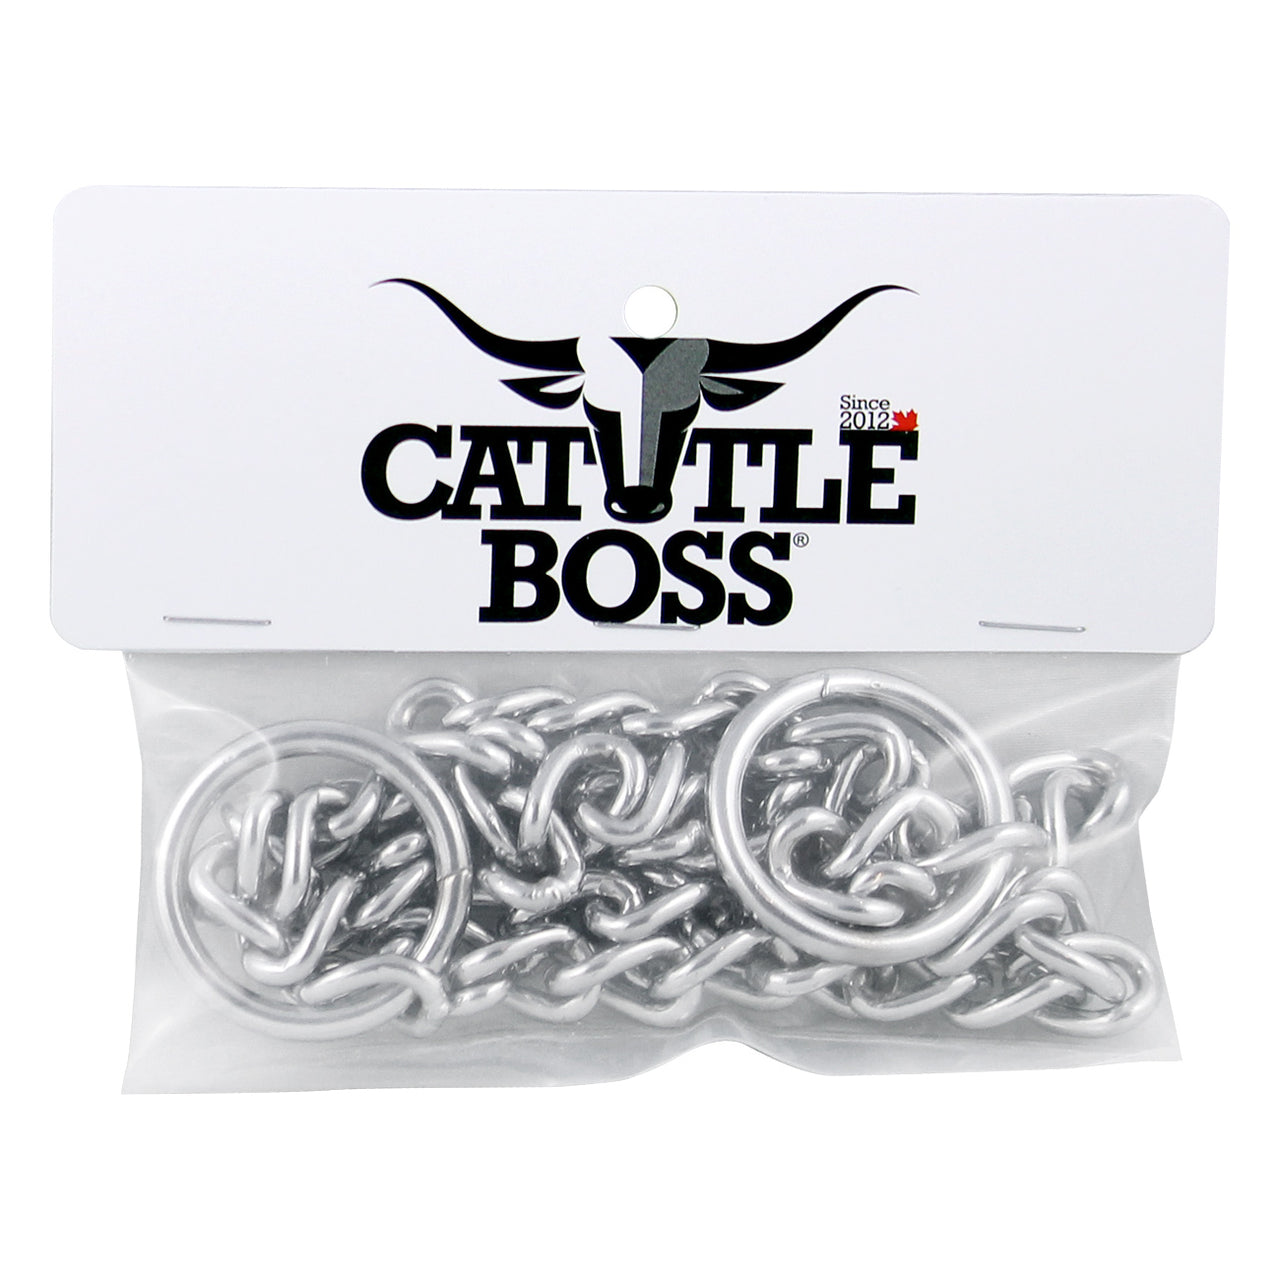 Cattle Boss Stainless Steel Ob Chain 60 Inch - Obstetrical Chain Cattle Boss - Canada